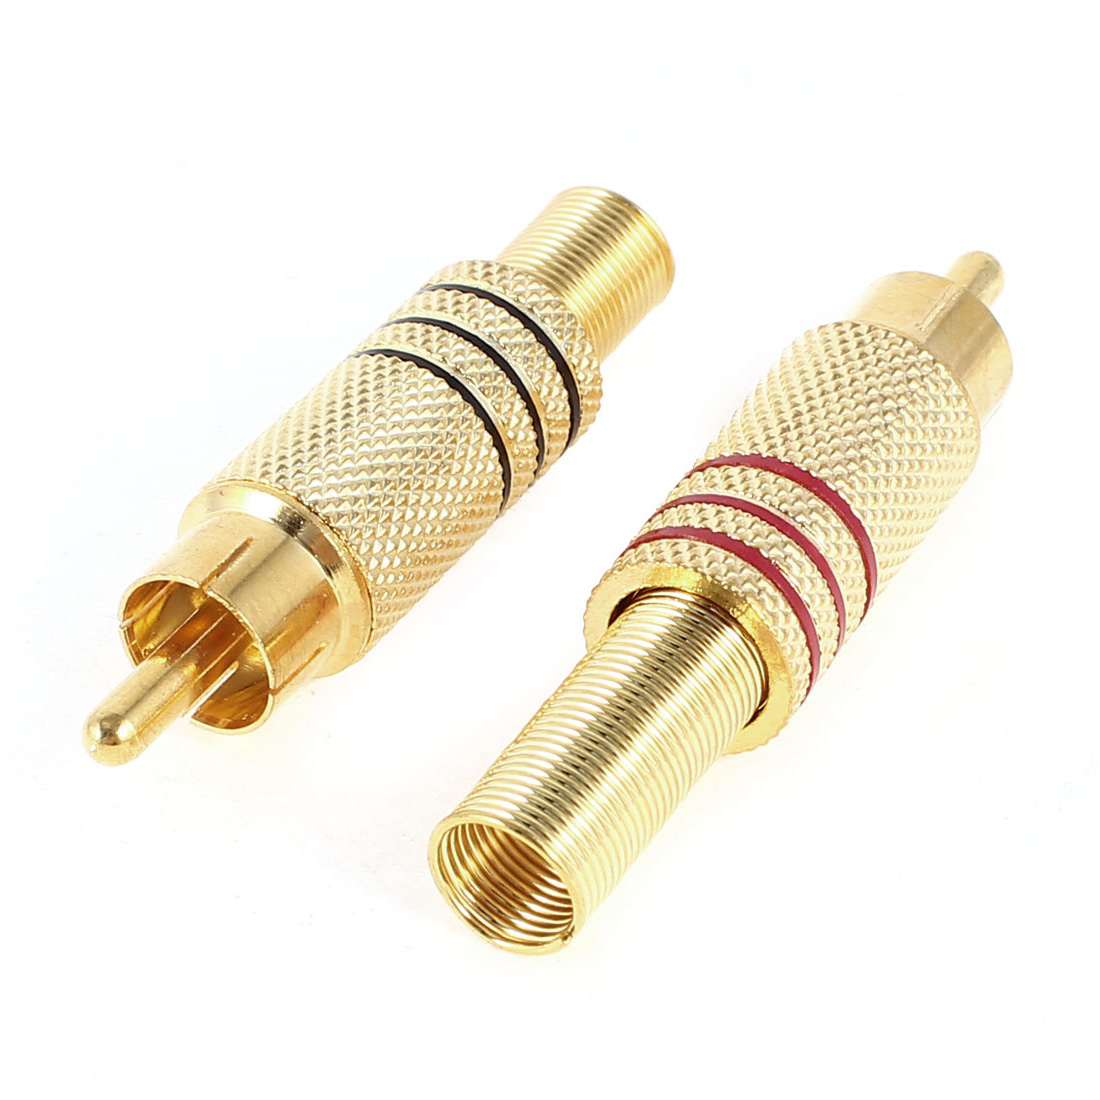 2 Pcs Spring End RCA Male Socket Audio Video Adapter Connector Gold Tone